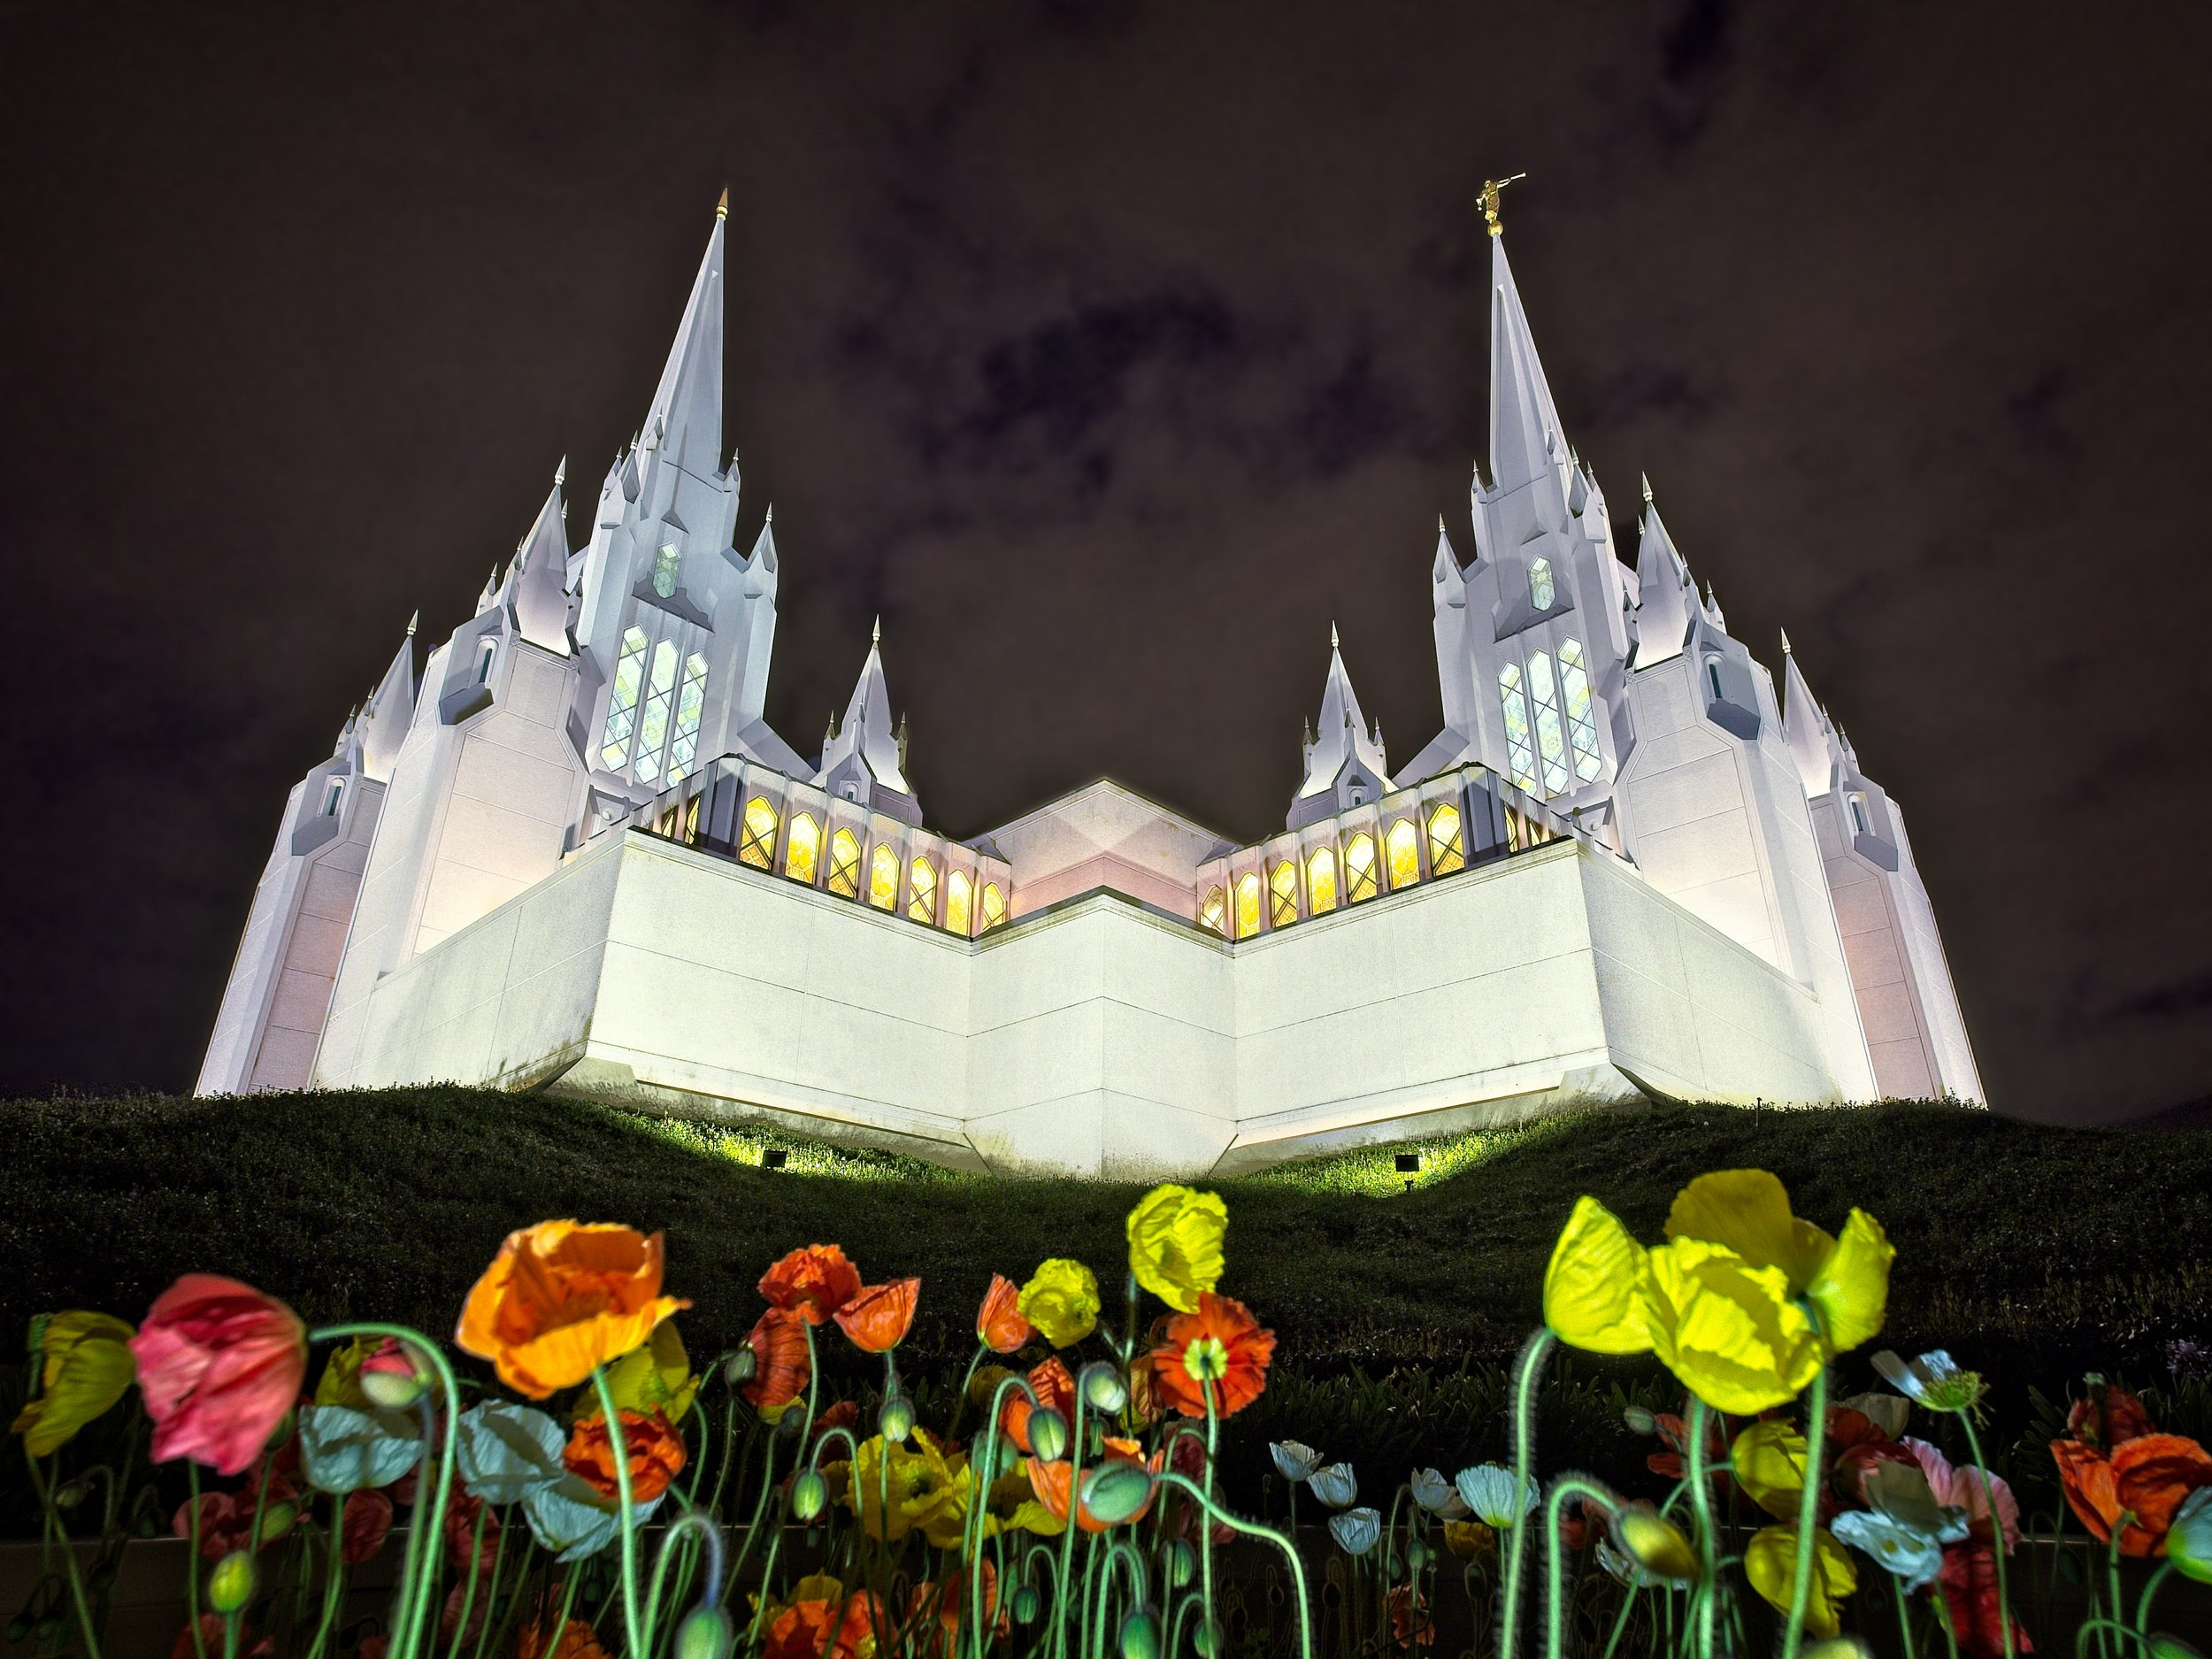 Sure felt like a pair of eyes were watching over me at the San Diego California Temple!